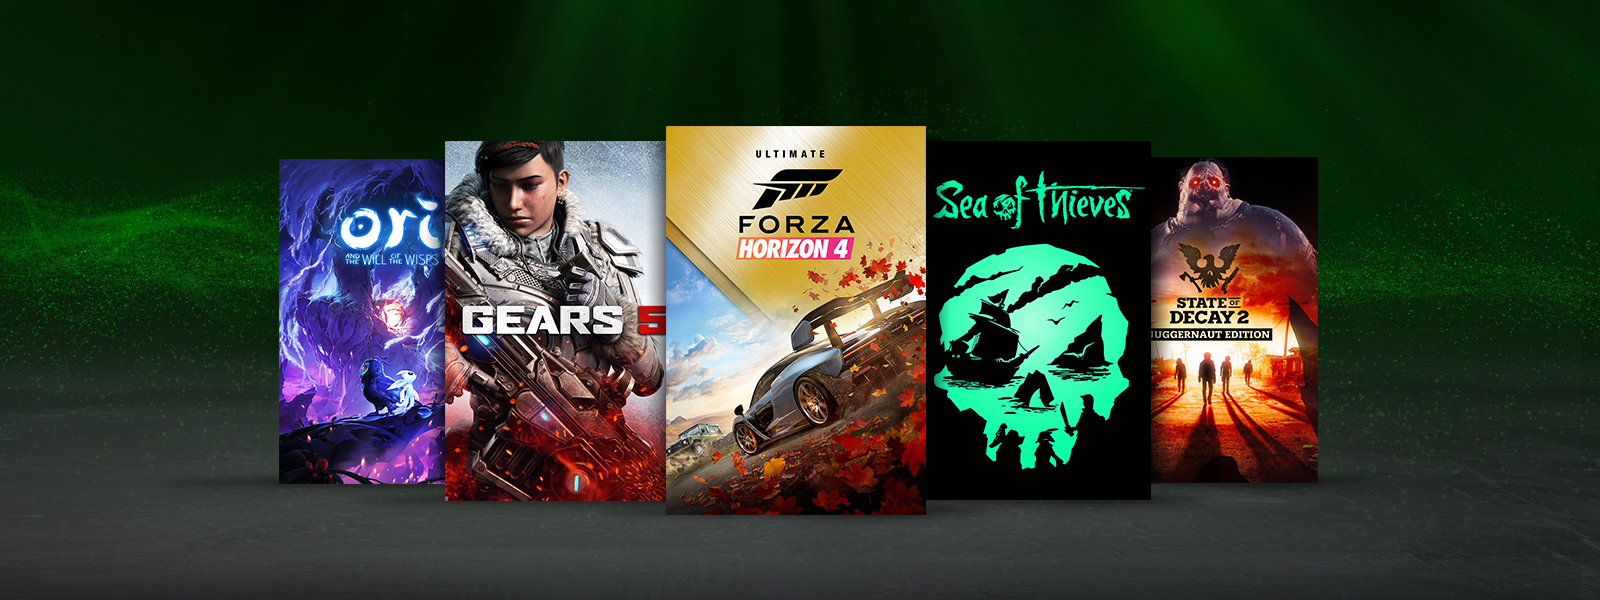 A collection of games that are part of the Xbox Studios Hall of Fame Sale, including Ori and the Will of the Wisps, Gears 5, and State of Decay 2 Juggernaut Edition.